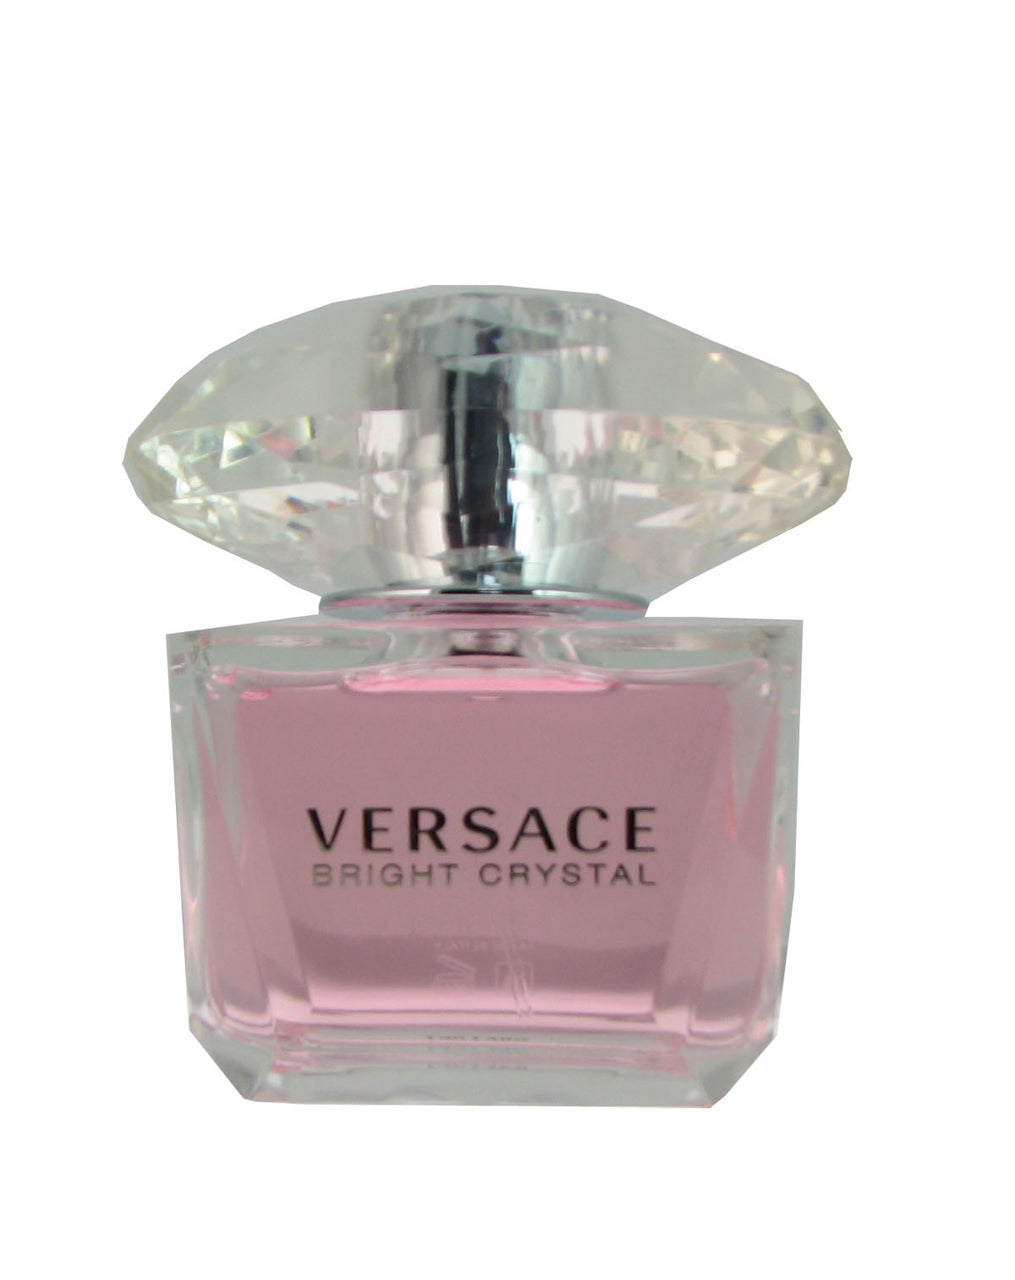 Versace Bright Crystal for Women by Versace 3 oz Eau De Toilette Spray Tester